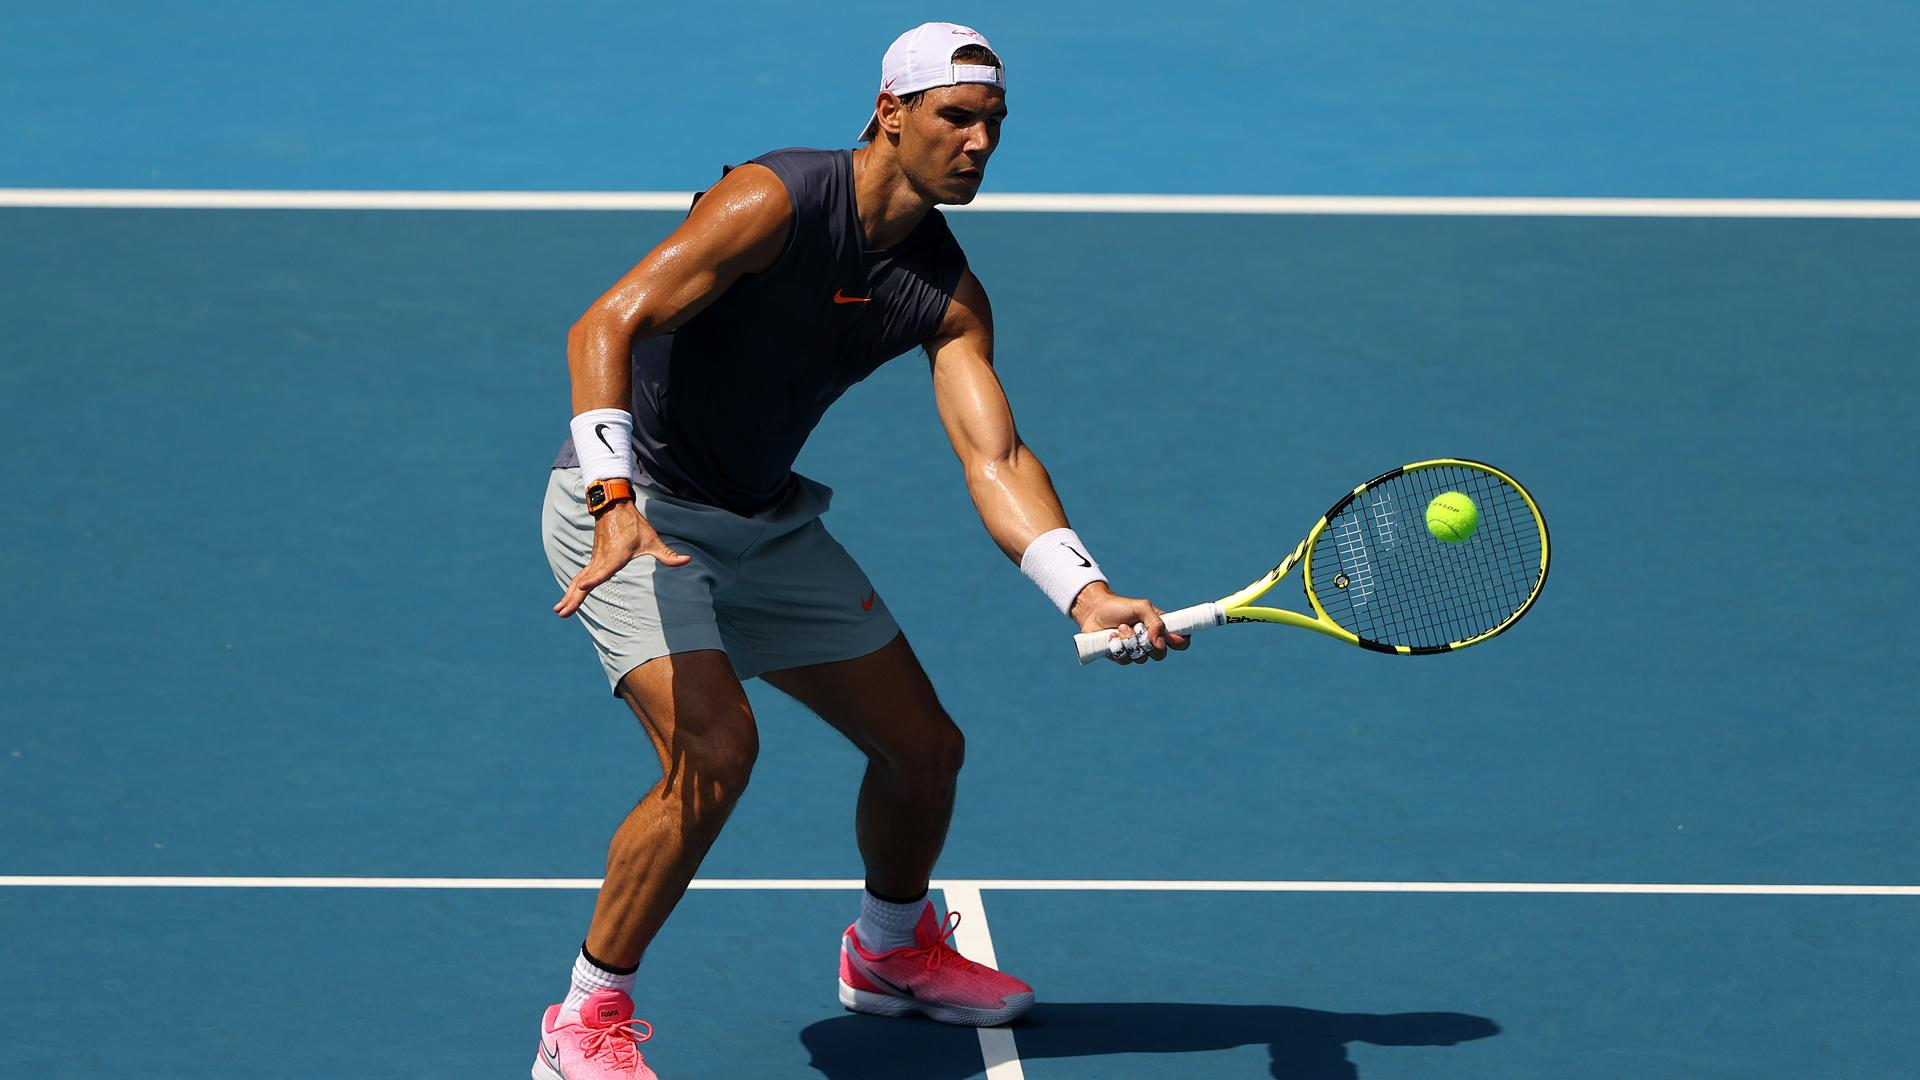 Australian Open 2020 Rafael Nadal Results And Form Ahead Of